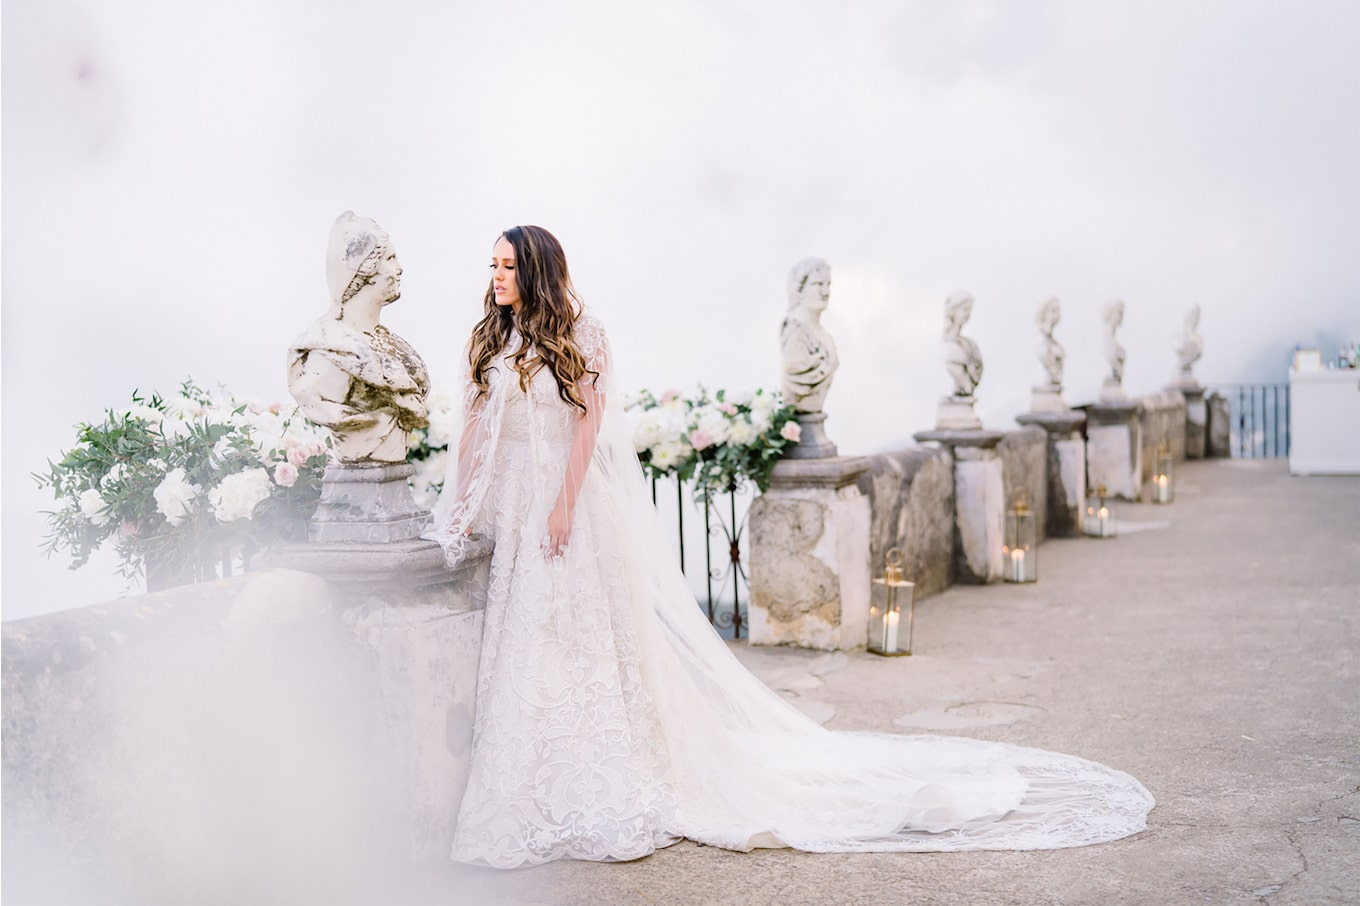 sandra aberg sony alpha 7r3 the bride wears her white dress and a veil cape while standing on a decorated terrace